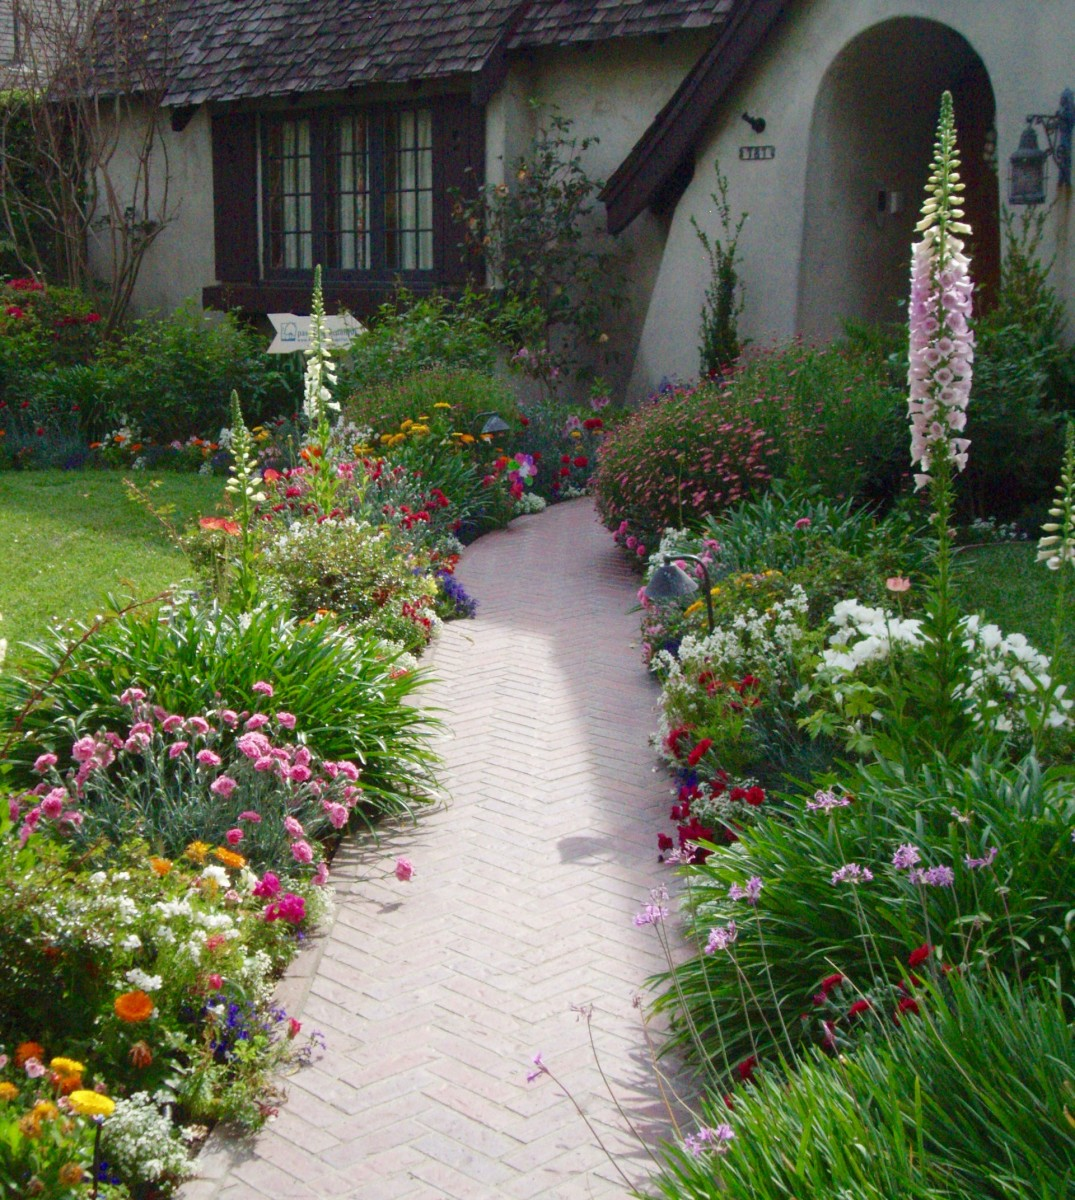 English Country Cottage style. Note the abundance of colorful flowers leading the eye toward the front door. The foxglove in the right rear typifies English style gardens.